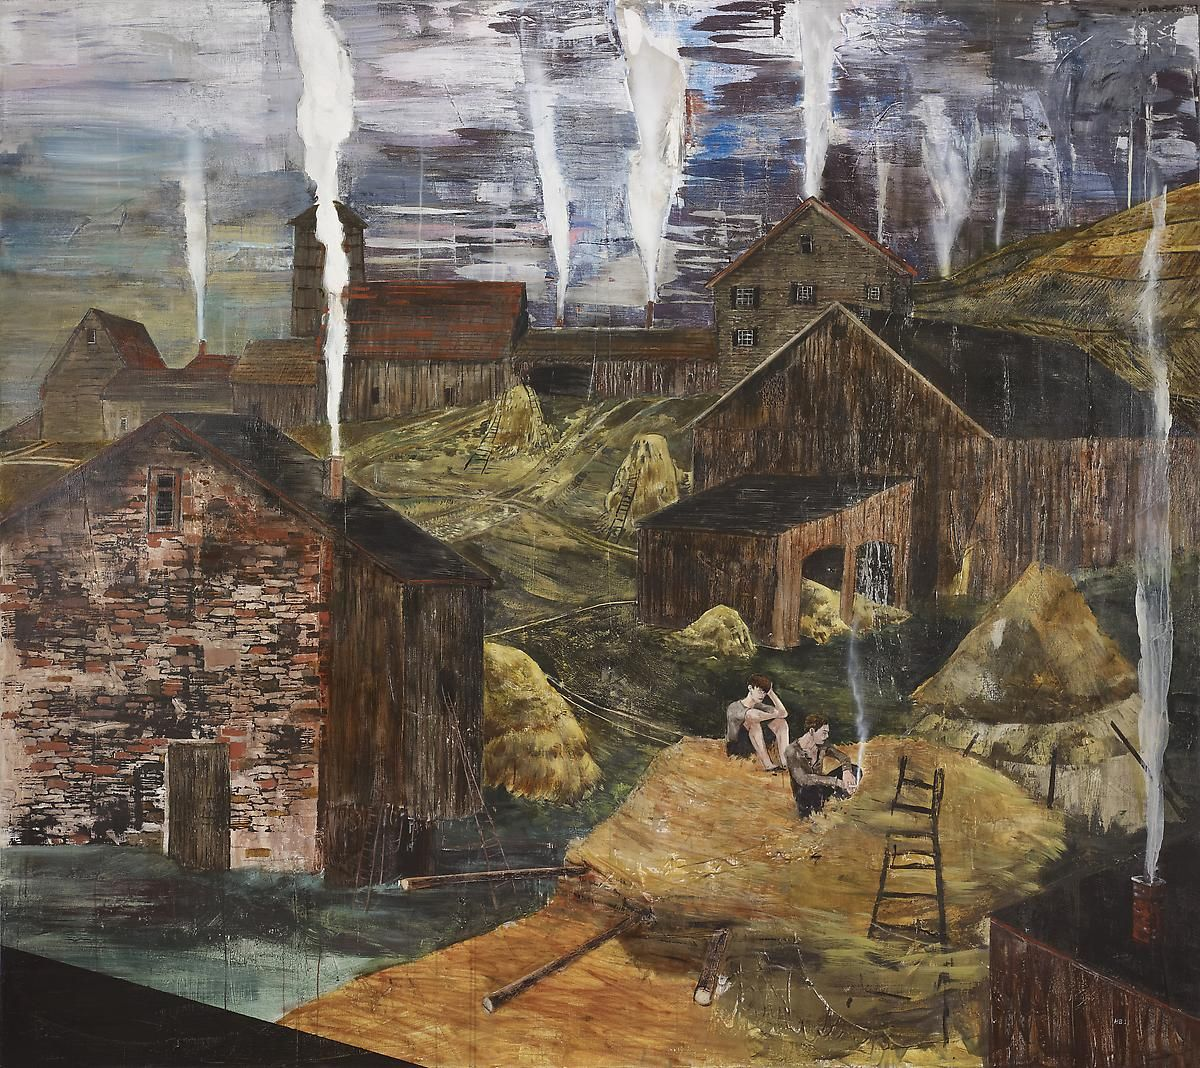 Hernan Bas - The Impending Flame (or, The Great Barn Fire of '83) 2011